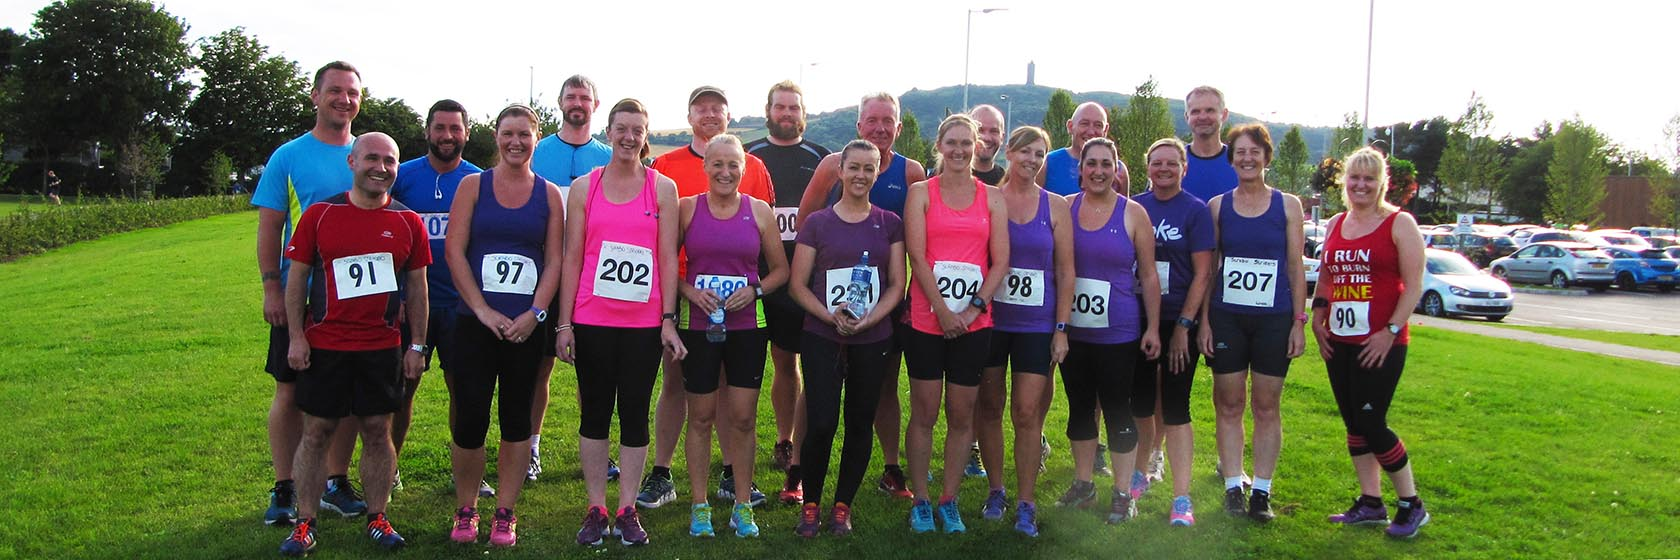 Couch To 5k Newtownards All Abilities Running Together In Newtownards Scrabo Striders